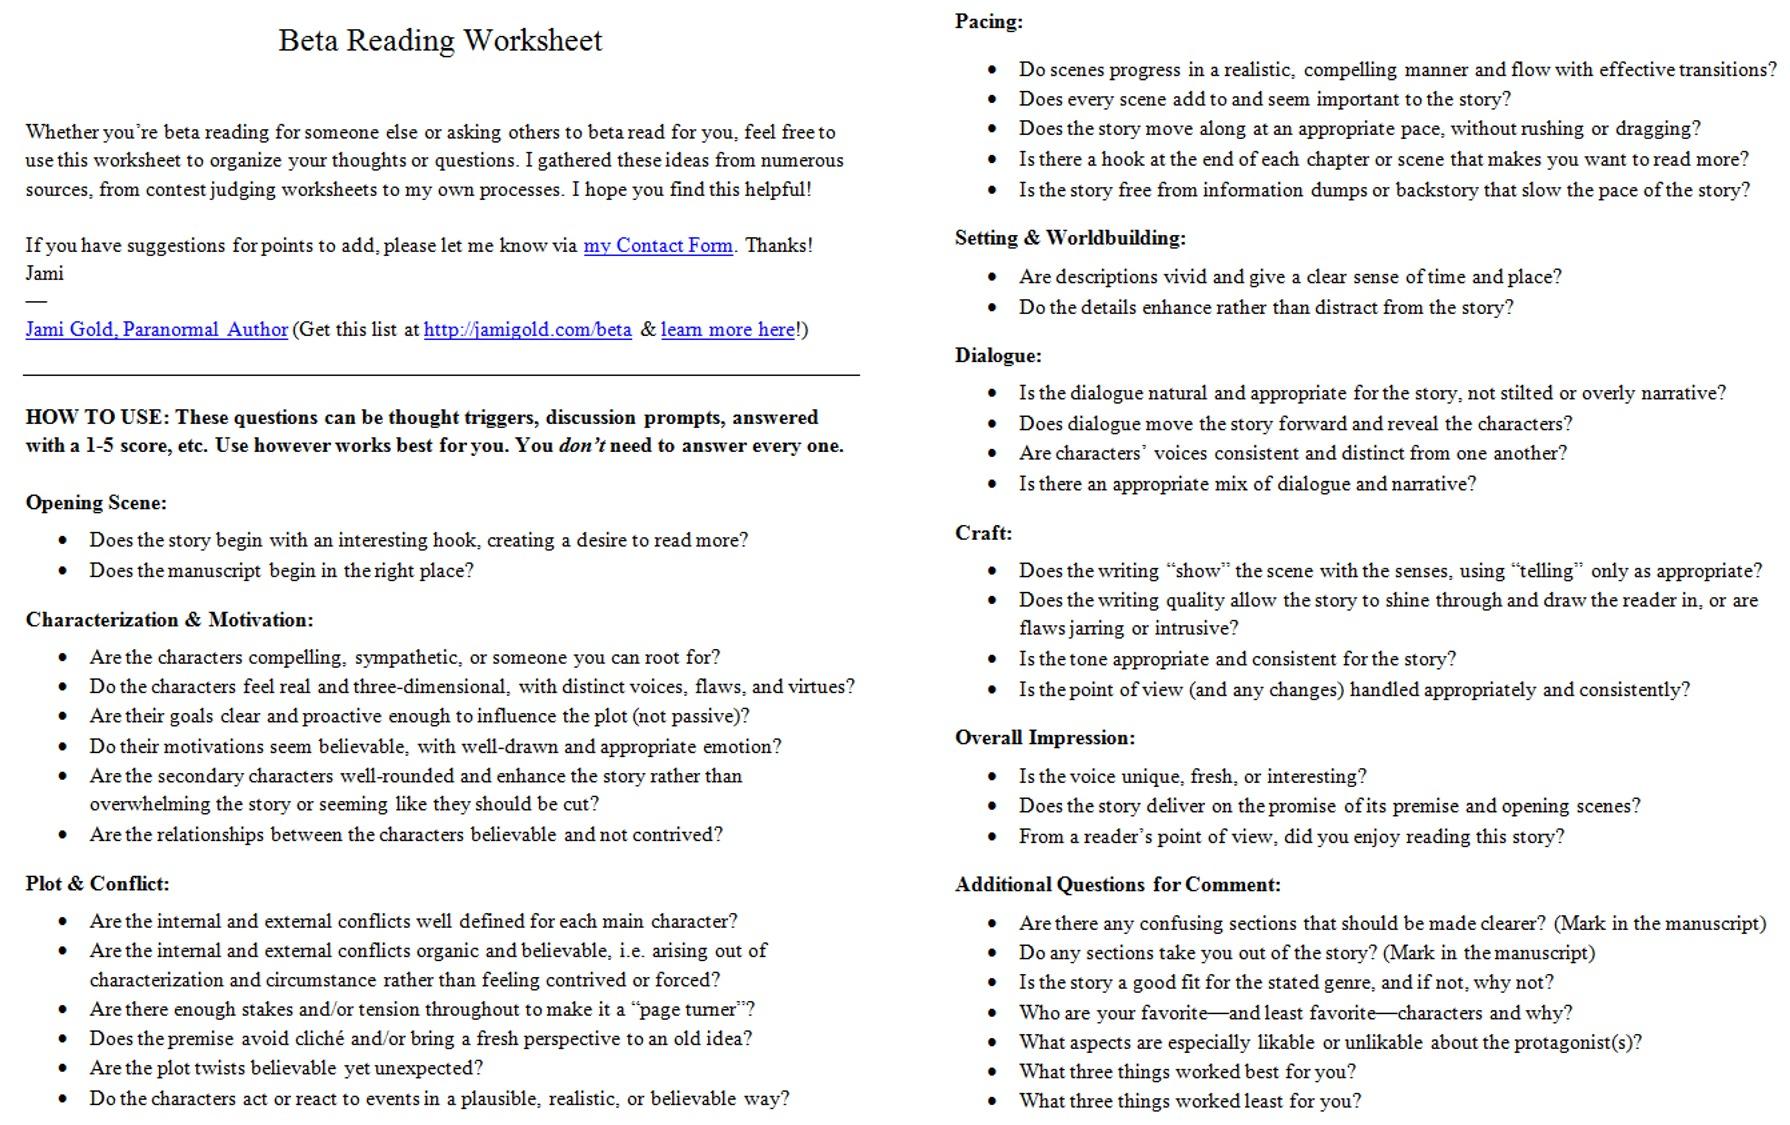 Aldiablosus  Inspiring Worksheets For Writers  Jami Gold Paranormal Author With Exquisite Screen Shot Of The Twopage Beta Reading Worksheet With Comely Identifying Pronouns Worksheet Also Printable Adding And Subtracting Integers Worksheet In Addition Graphing Hyperbolas Worksheet And Peppered Moth Worksheet As Well As One And Two Step Equations Worksheets Additionally Preposition Worksheets For Kindergarten From Jamigoldcom With Aldiablosus  Exquisite Worksheets For Writers  Jami Gold Paranormal Author With Comely Screen Shot Of The Twopage Beta Reading Worksheet And Inspiring Identifying Pronouns Worksheet Also Printable Adding And Subtracting Integers Worksheet In Addition Graphing Hyperbolas Worksheet From Jamigoldcom